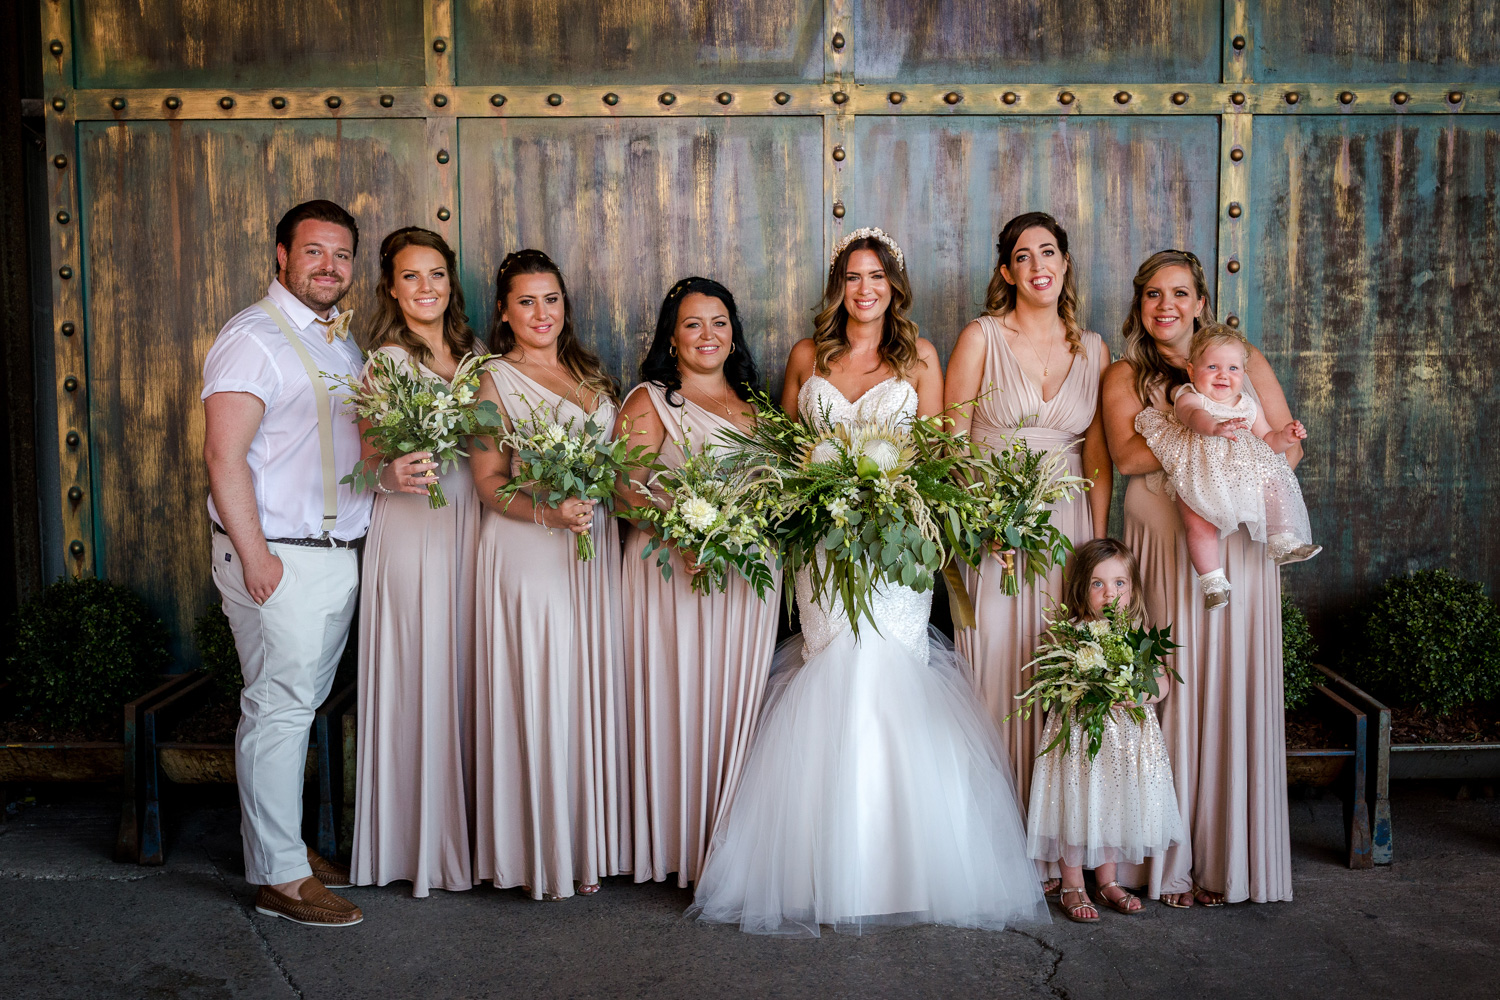 The bride mingles with her guests